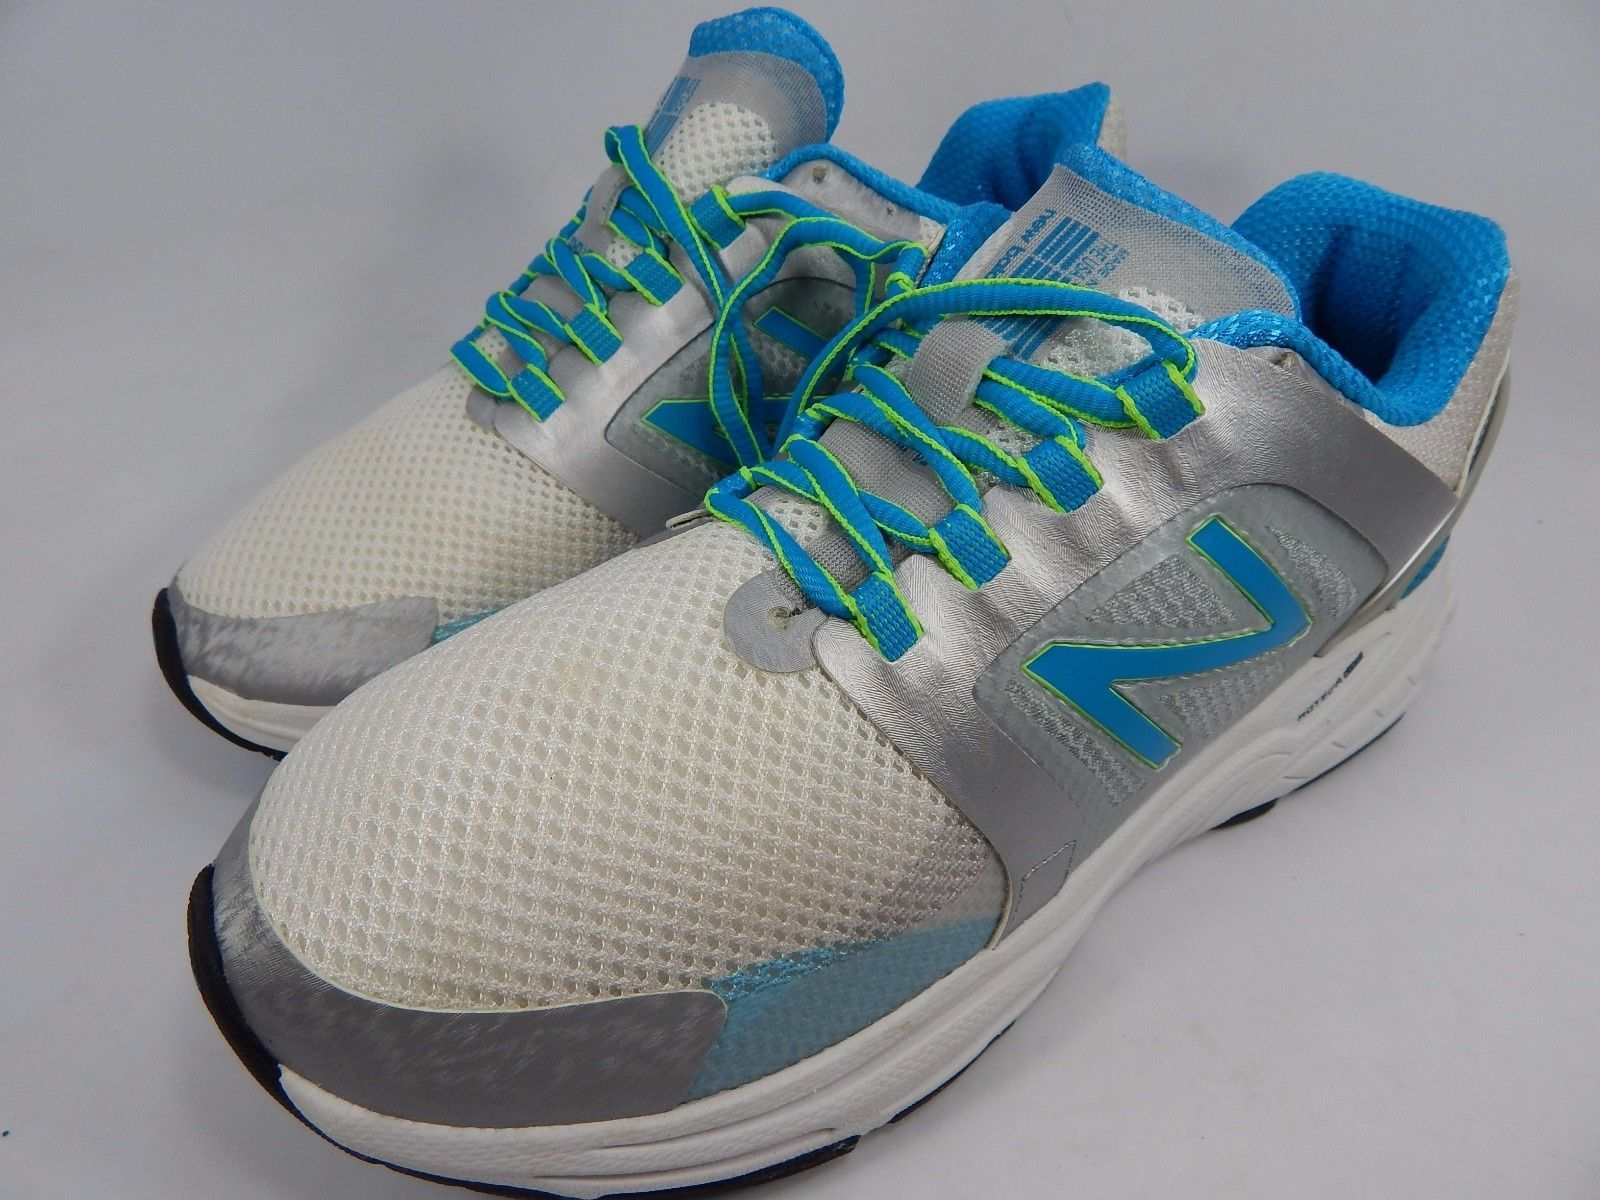 MISMATCH New Balance 3040 v1 Women's Shoes Size 8 M (B) Left & 7 D WIDE Right